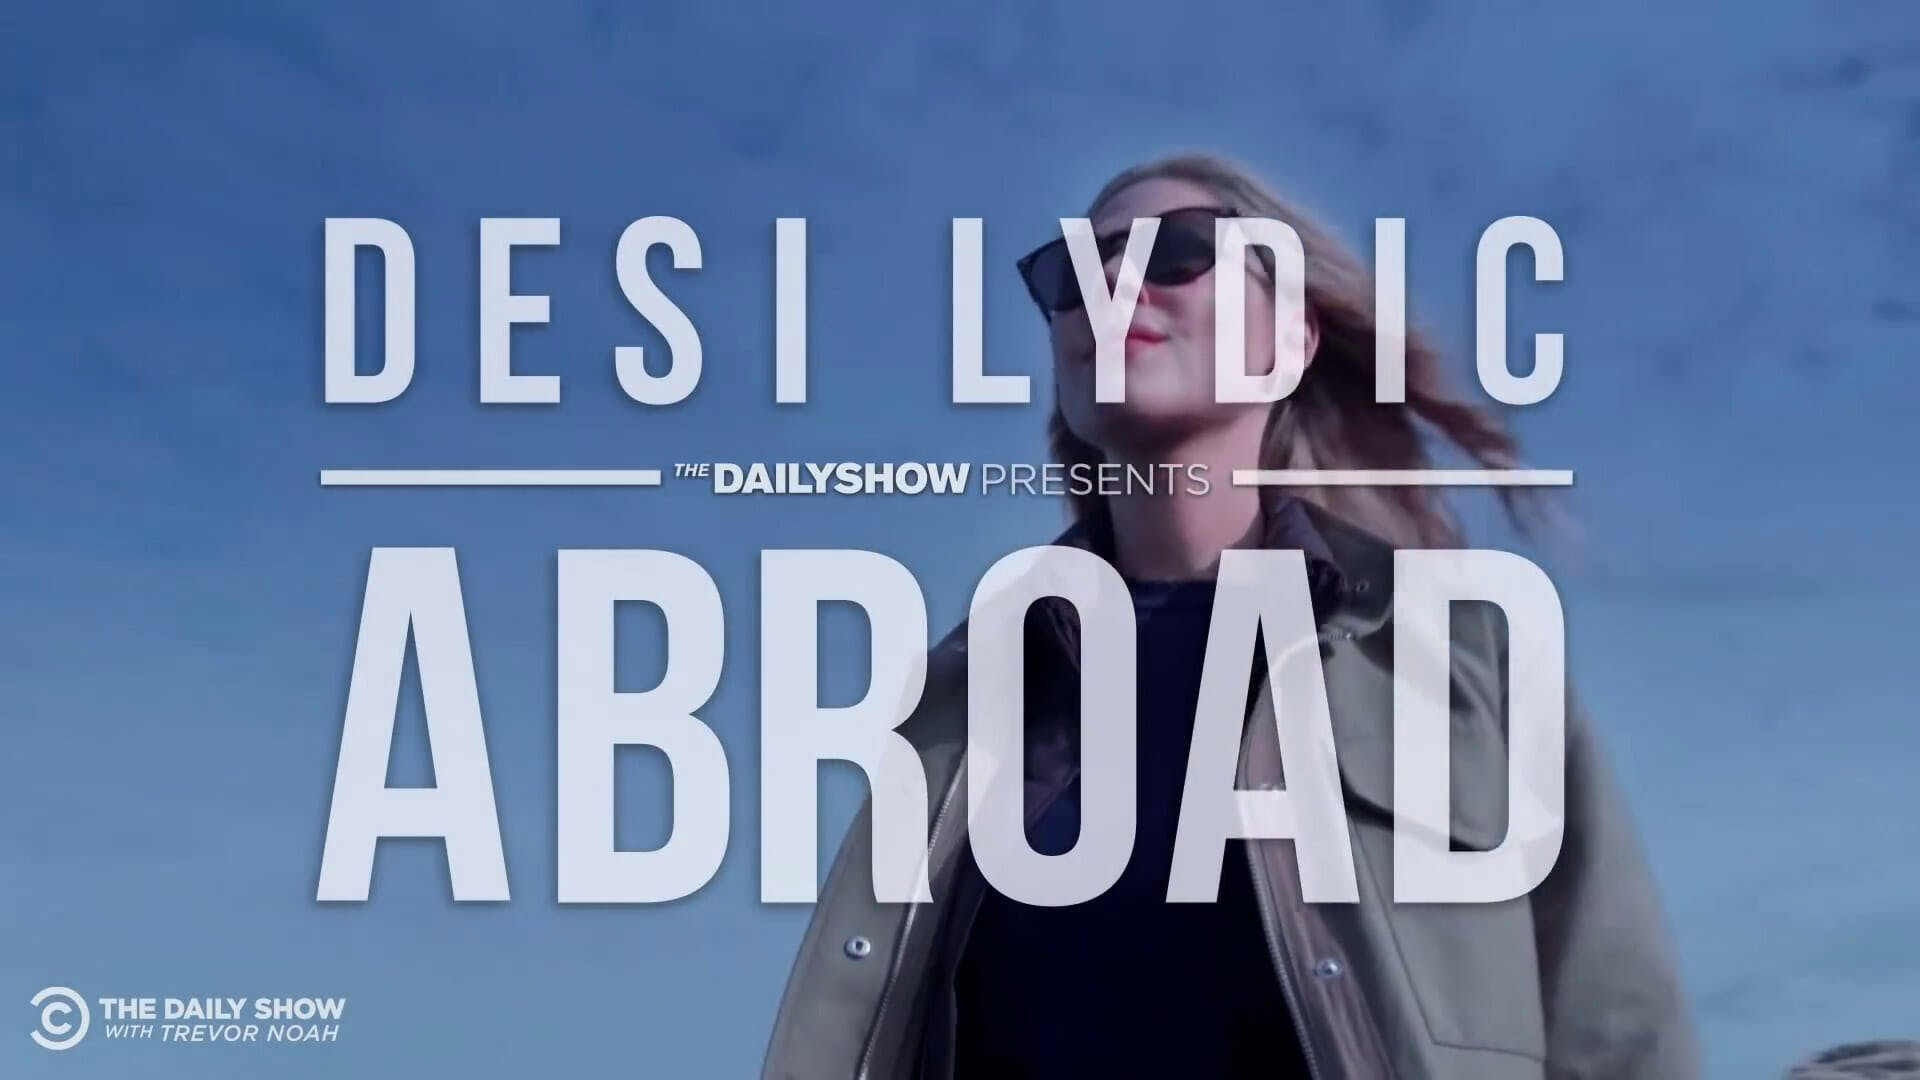 watch desi lydic abroad online free on Comedy Central